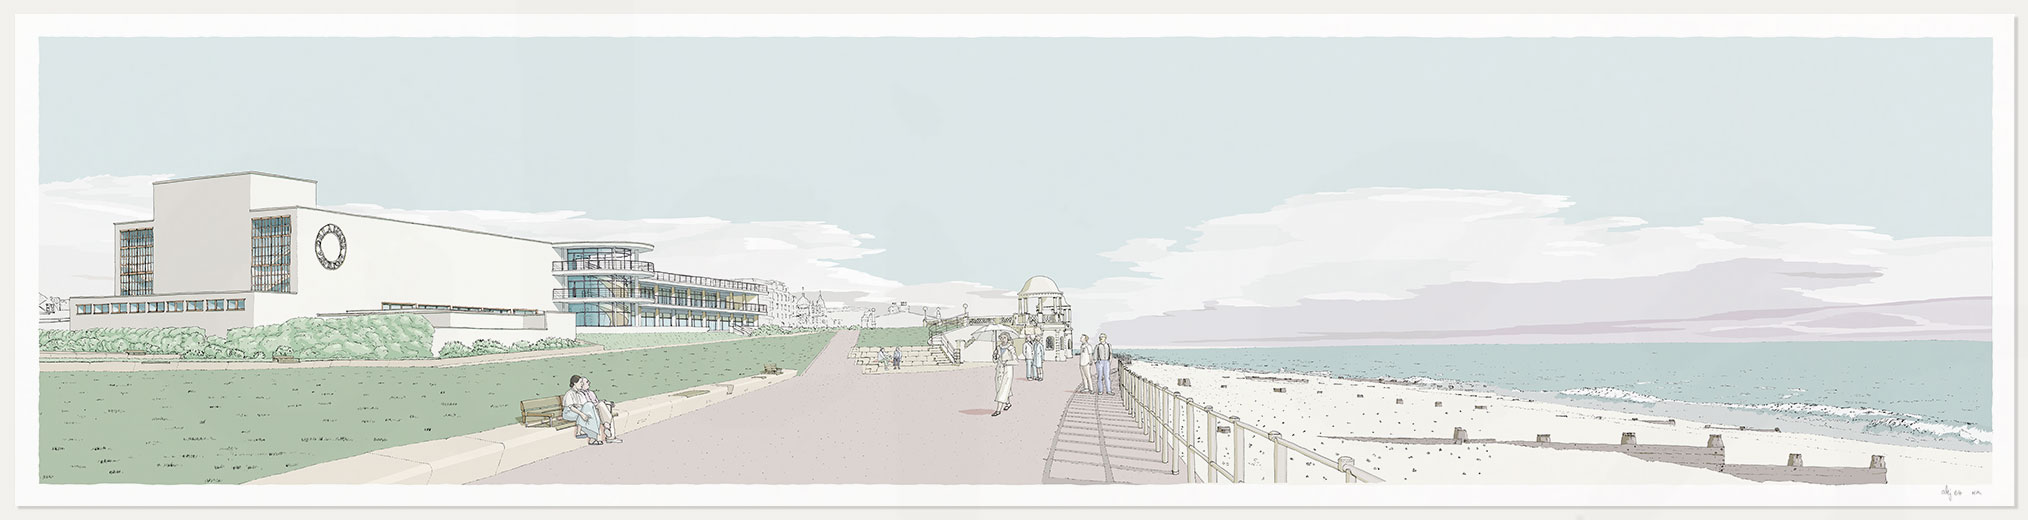 panoramic fine art print named De la Warr Pavilion Bexhill on Sea Pebble Beach by artist alej ez